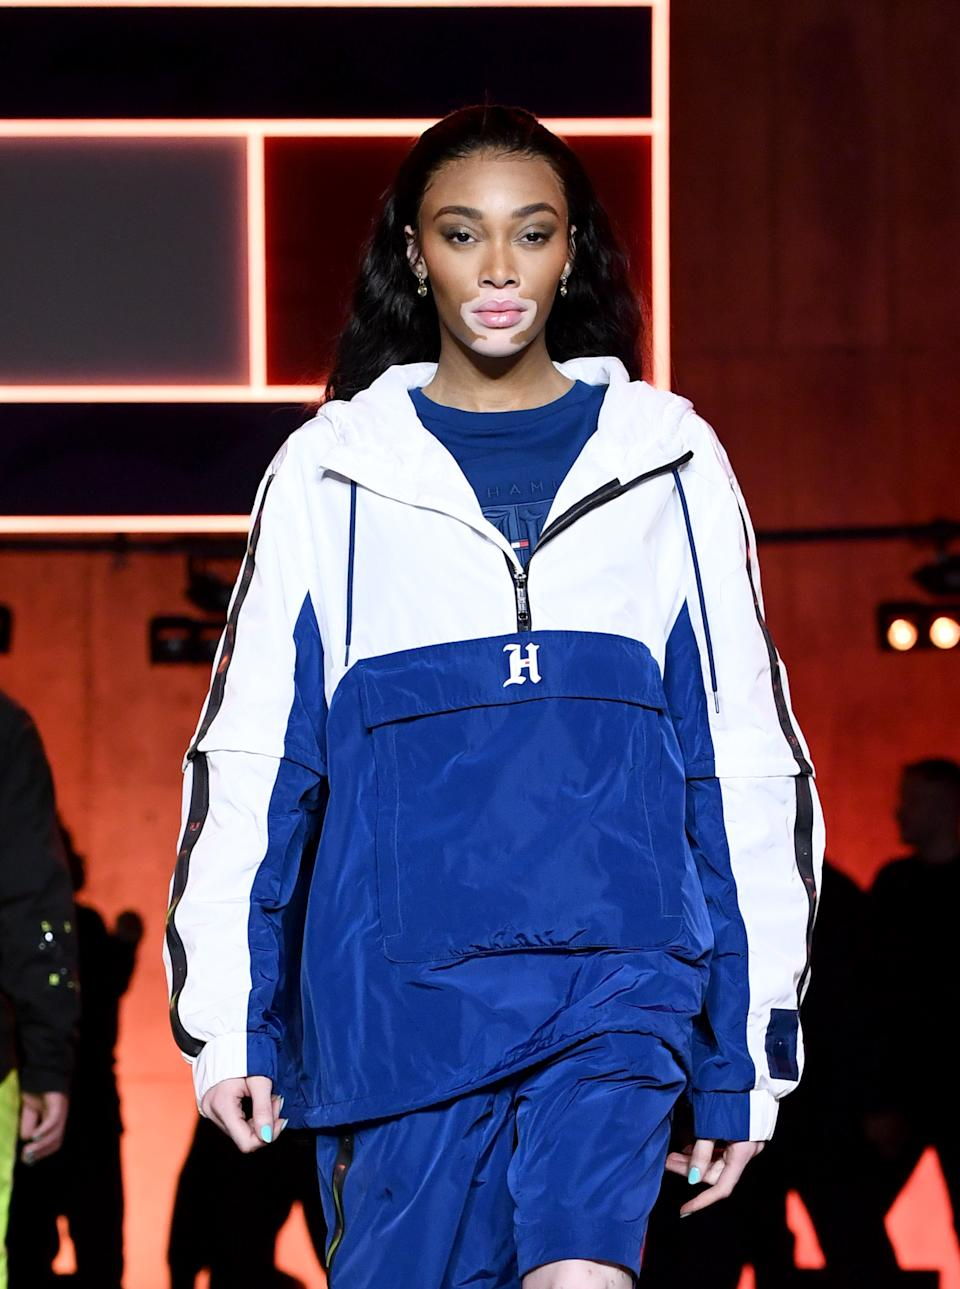 Winnie Harlow walks the runway at the Tommy Hilfiger show during London Fashion Week. (Getty Images)